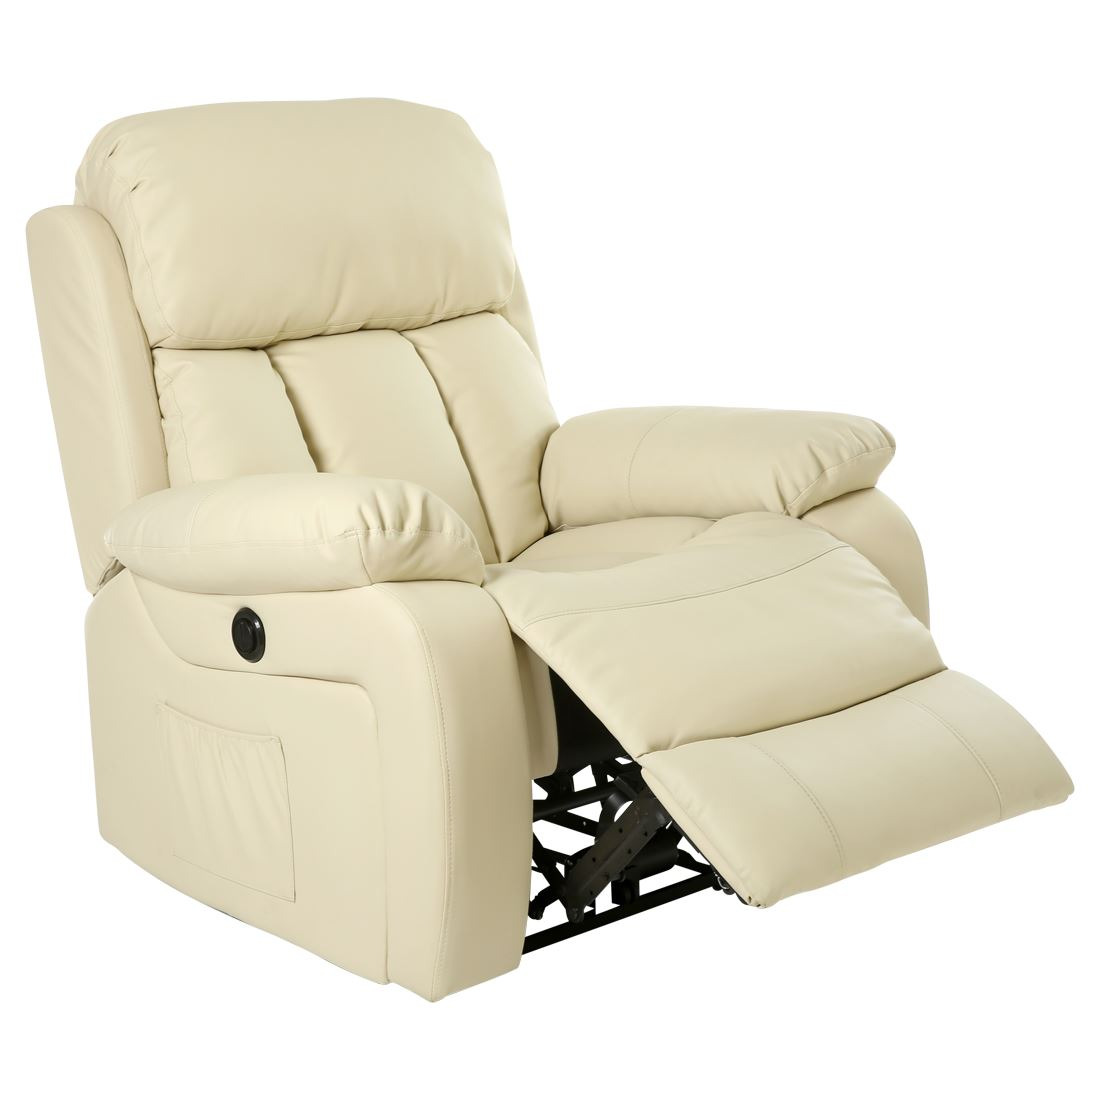 Electric Recliner Leather Chairs Chester Electric Heated Leather Massage Recliner Chair